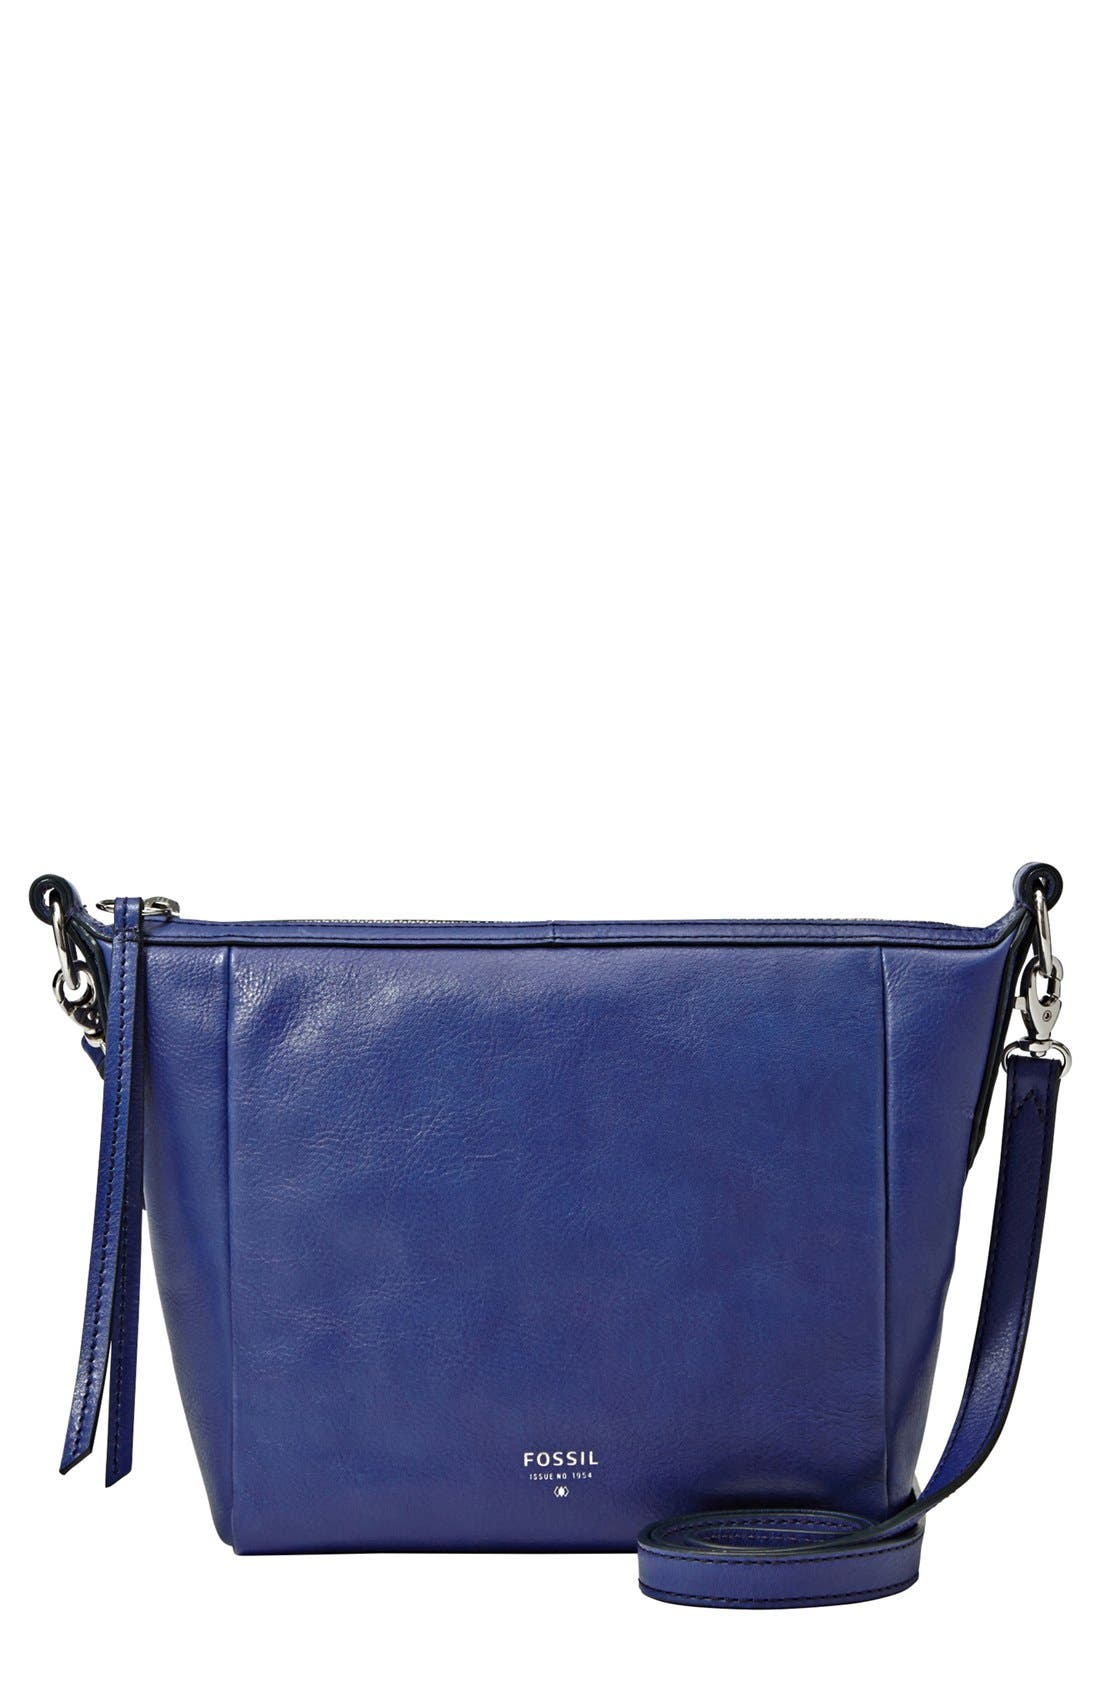 Alternate Image 1 Selected - Fossil 'Sydney' Crossbody Bag